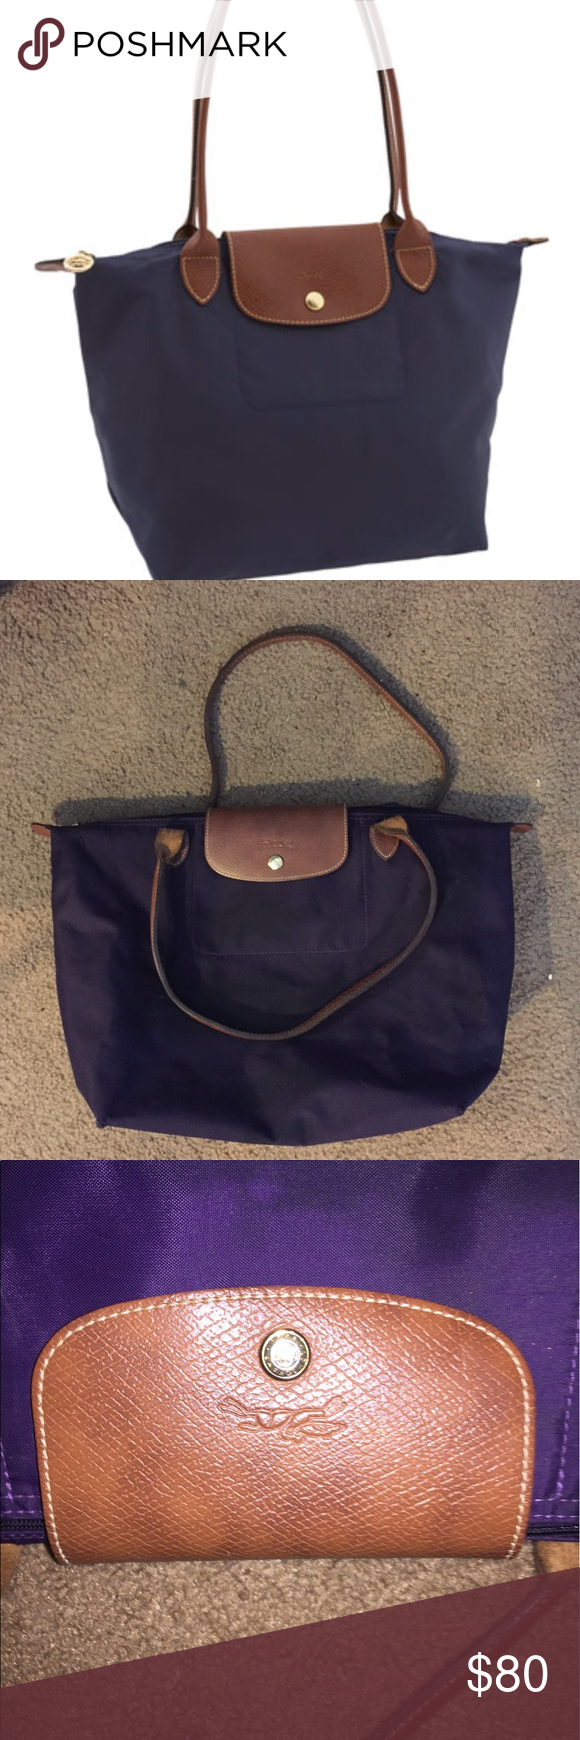 Authentic purple longchamp purse! Great summer bag Authentic purple long  champ purse! Lightly used but great condition! Willing to negotiate price  Longchamp ... 625dfaa050